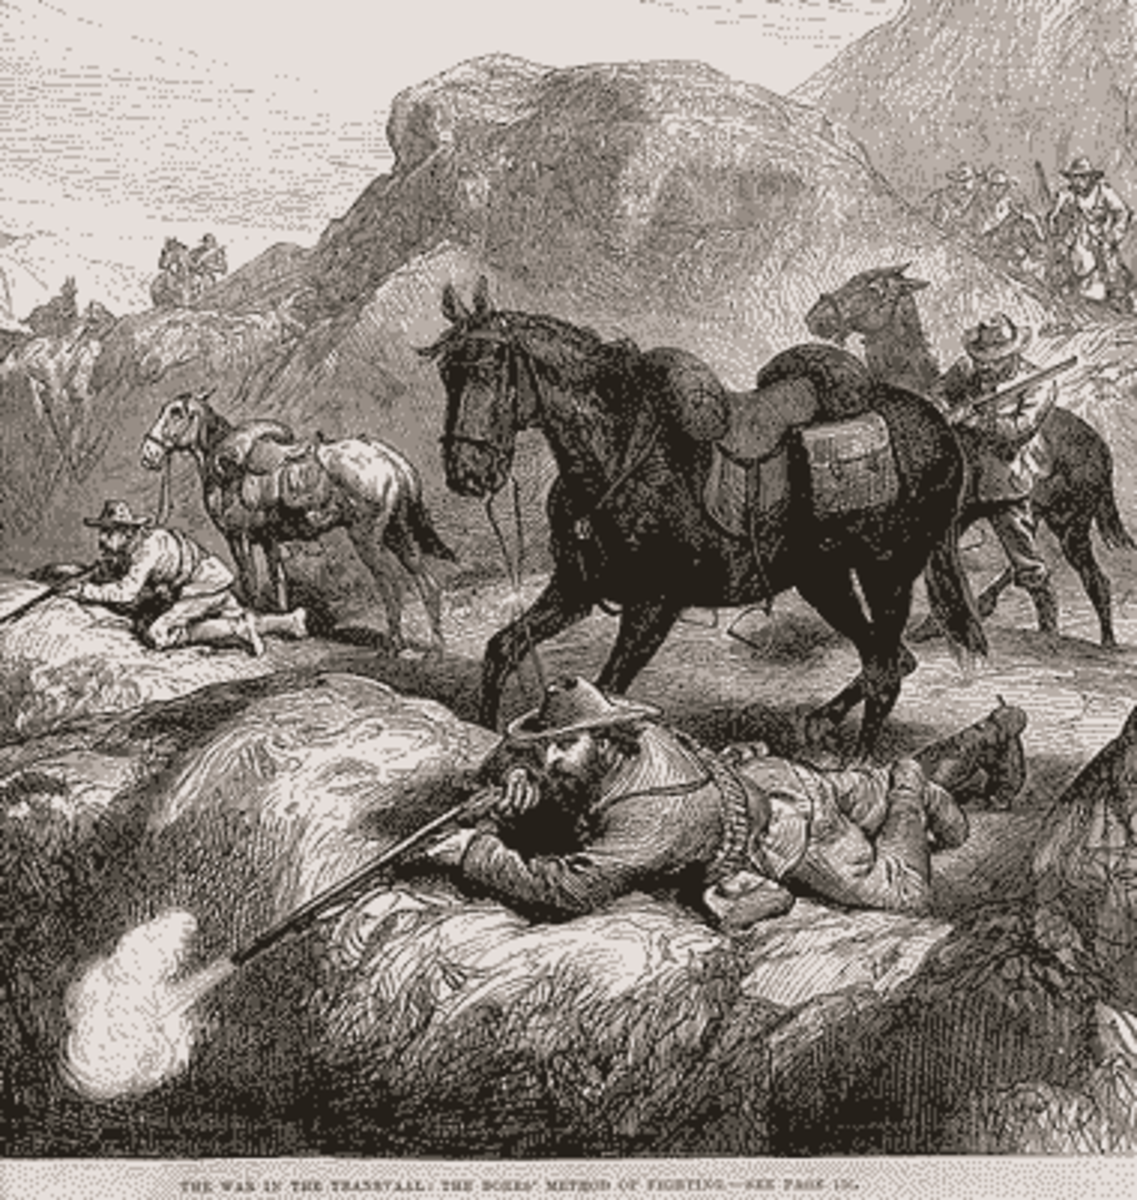 The war in the Transvaal: The Boers' method of fighting.